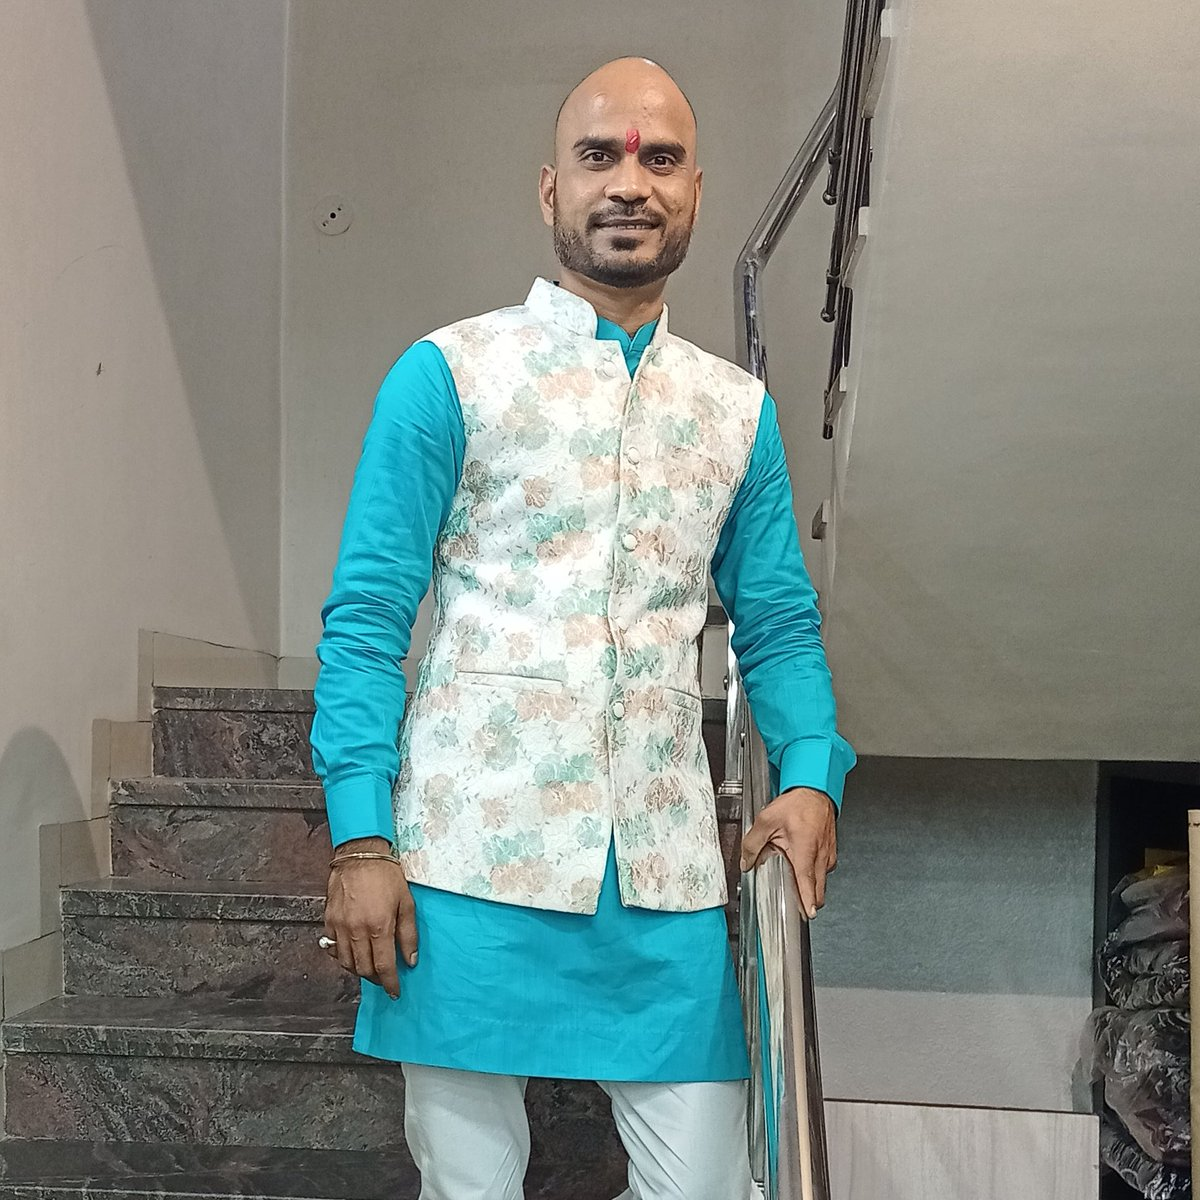 #NewProfilePic #diwali2020 #Celebration